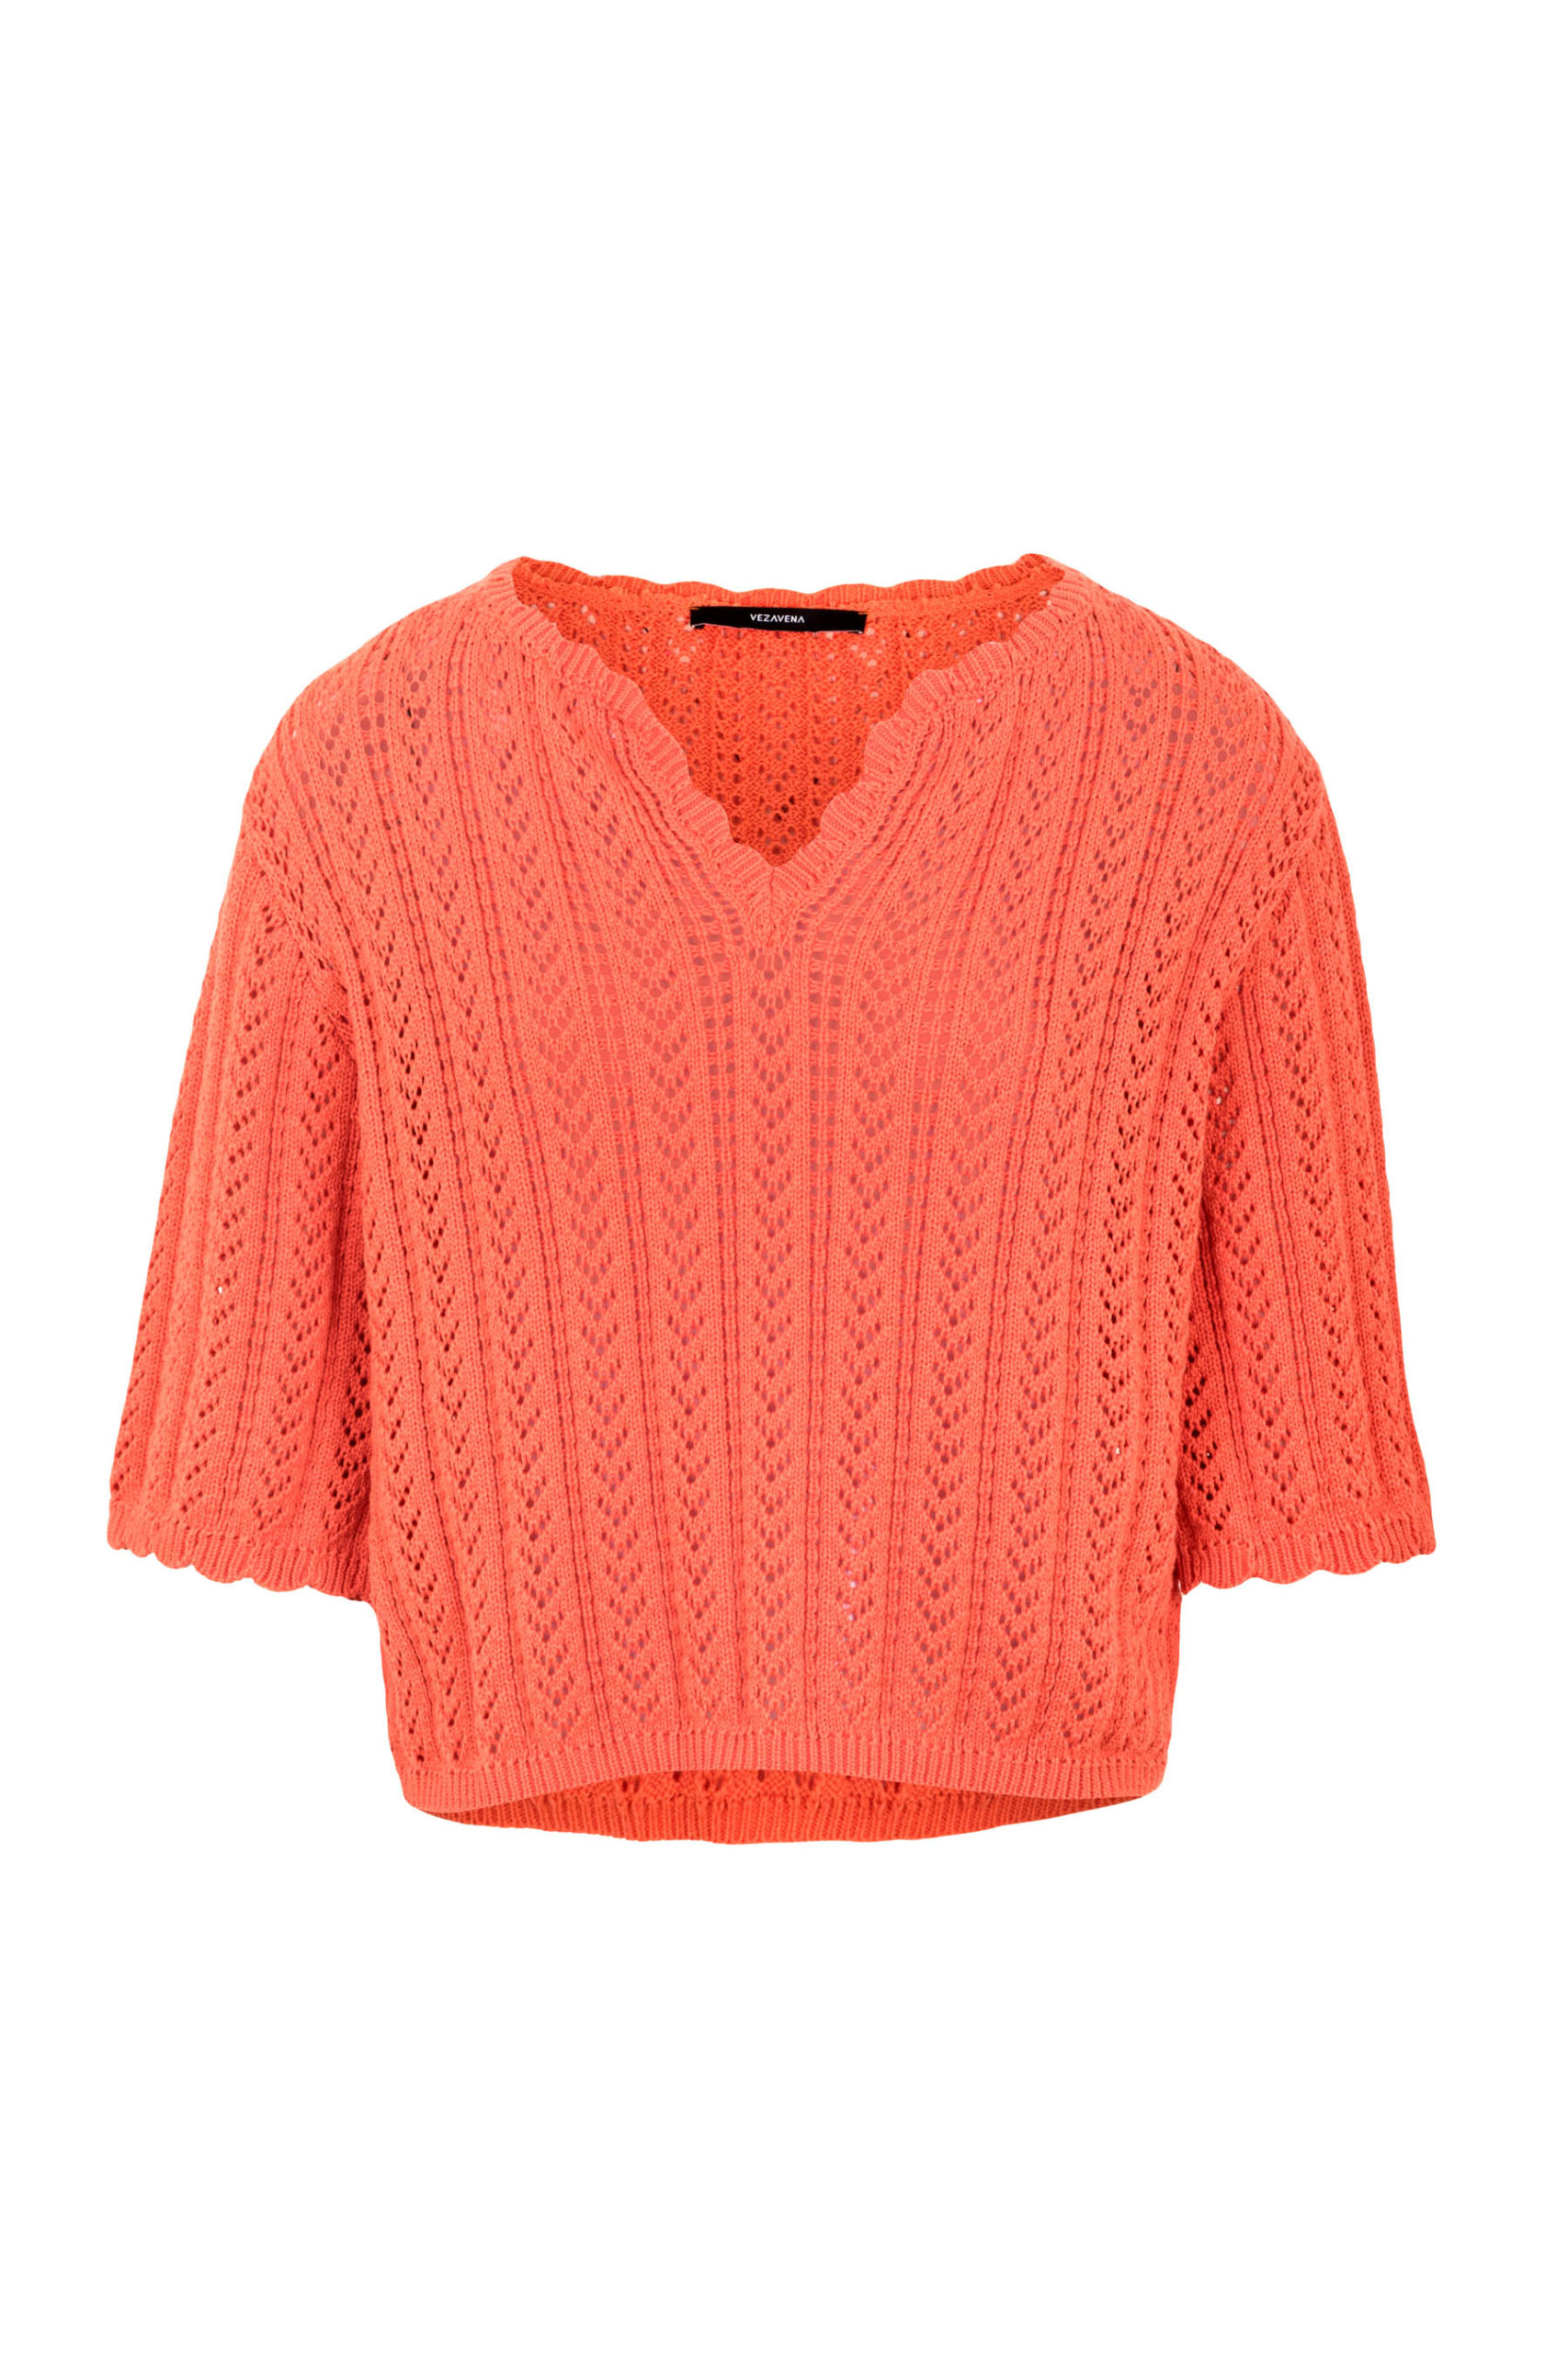 Sweater Top Coral